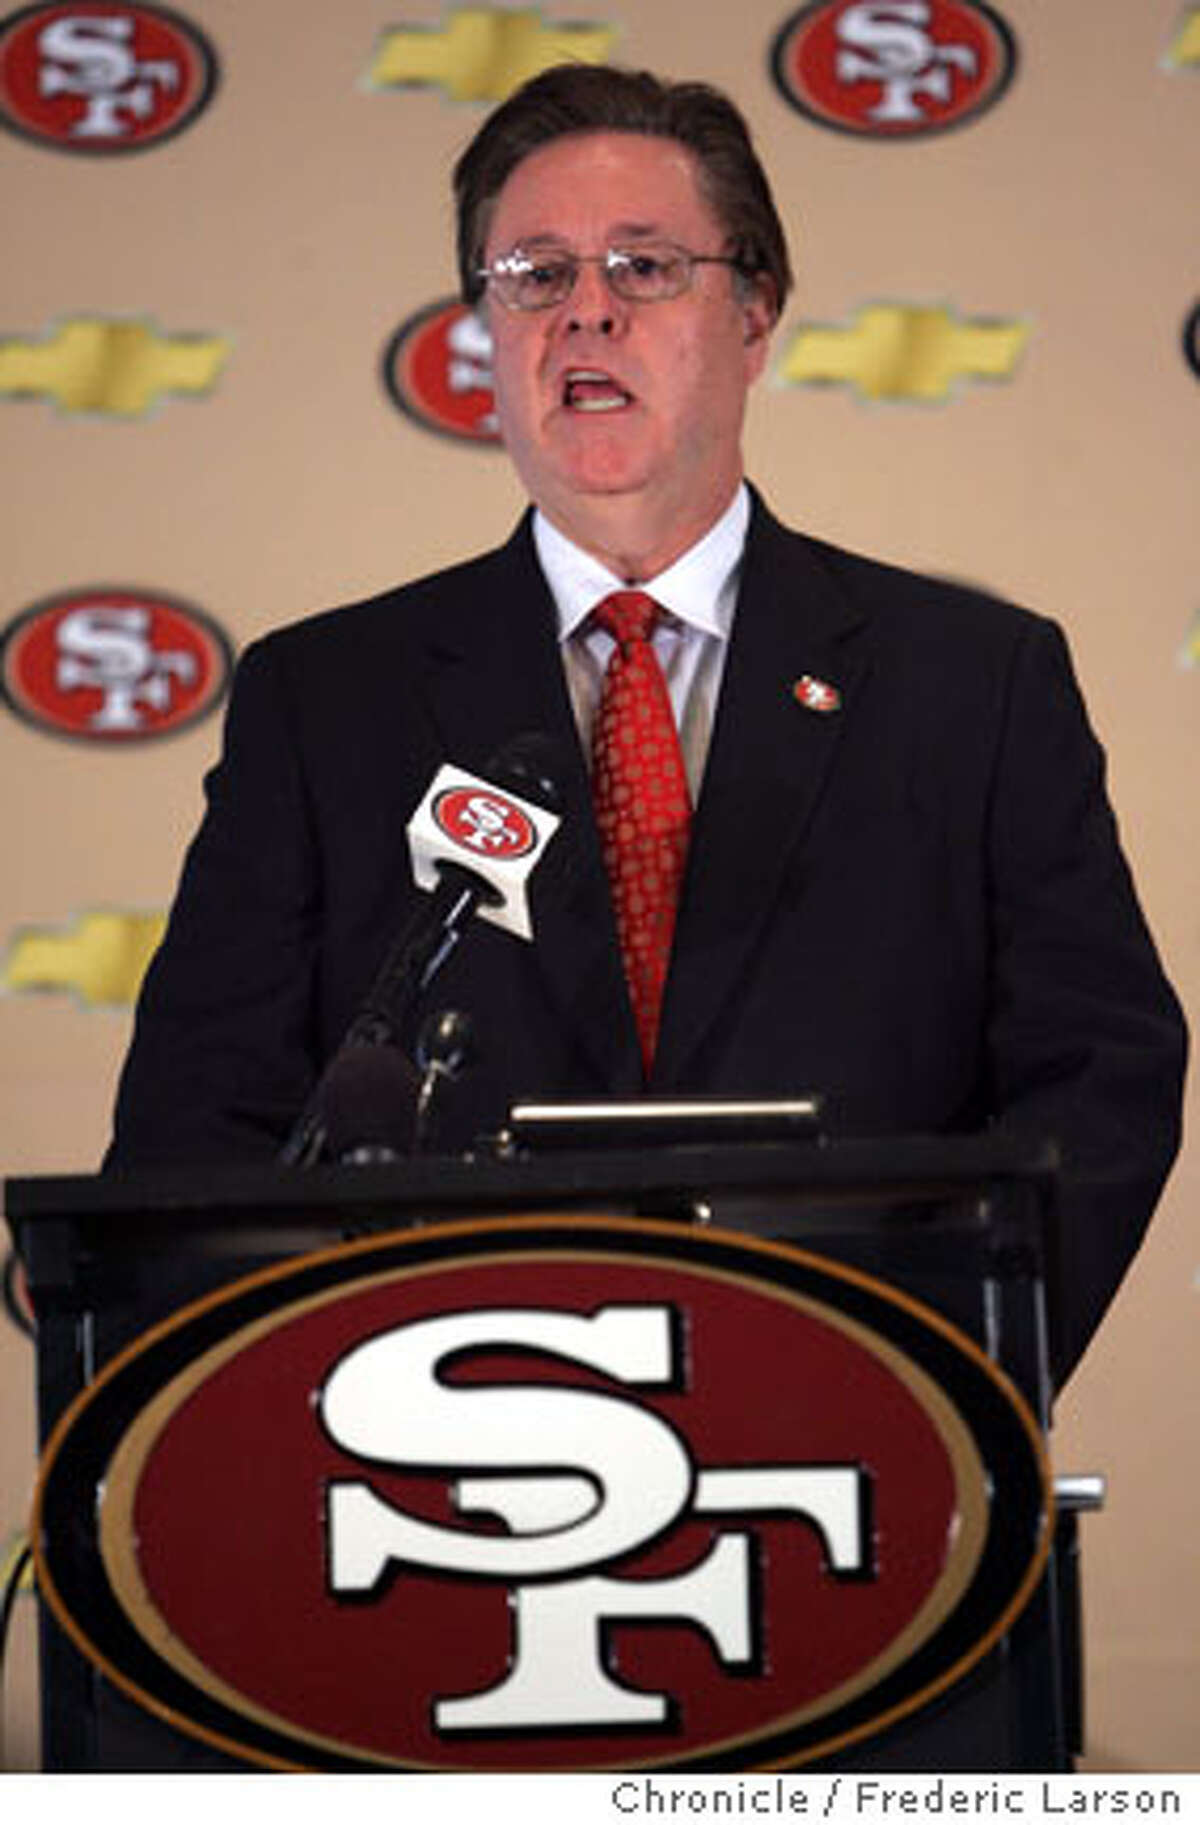 Owner of the 49ers John York stated at a press conference in Santa Clara that The San Francisco 49ers will abandon their namesake city and look to build a stadium in Santa Clara, after concluding that their plan to build a stadium and retail-housing complex at Candlestick Point will not work. The 49ers said Candlestick Point, where the team has played since 1971, cannot support a